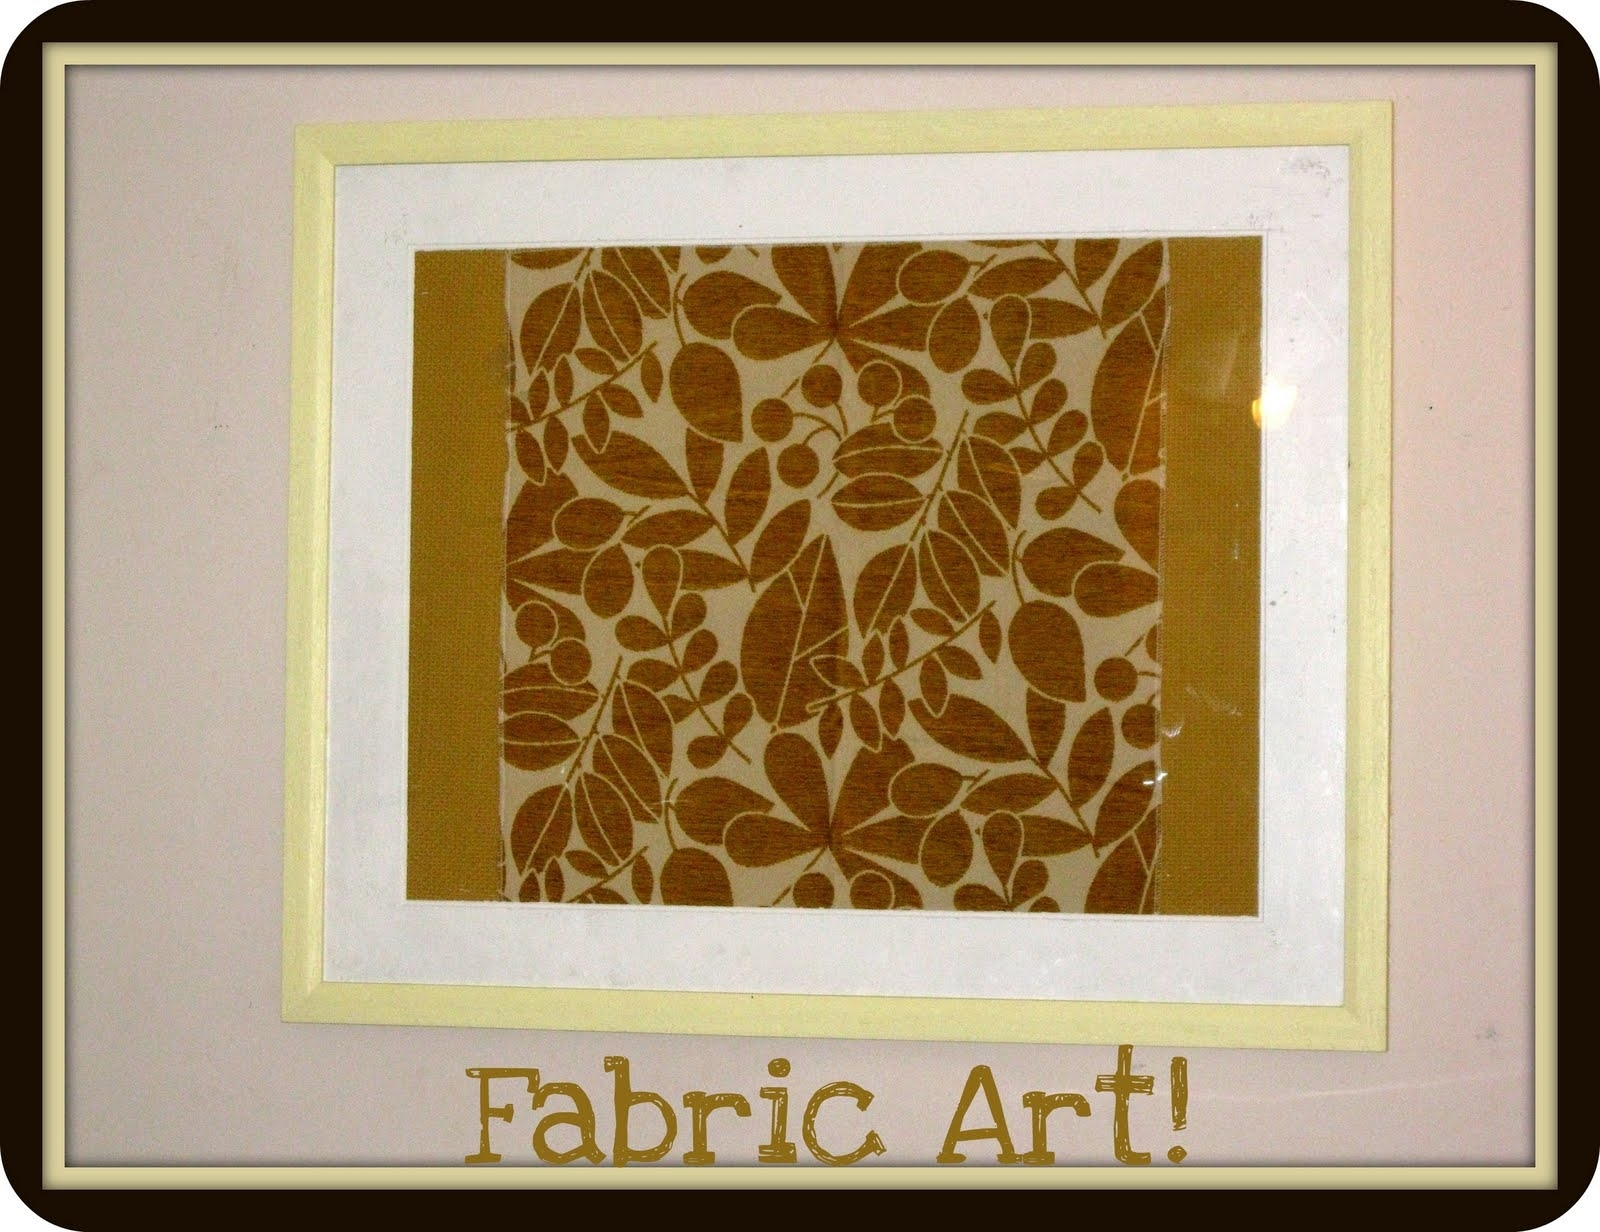 Framed Fabric Wall Art E2 80 94 Crafthubs Cheap Simple Diy With Regard To Most Recently Released Simple Fabric Wall Art (View 6 of 15)